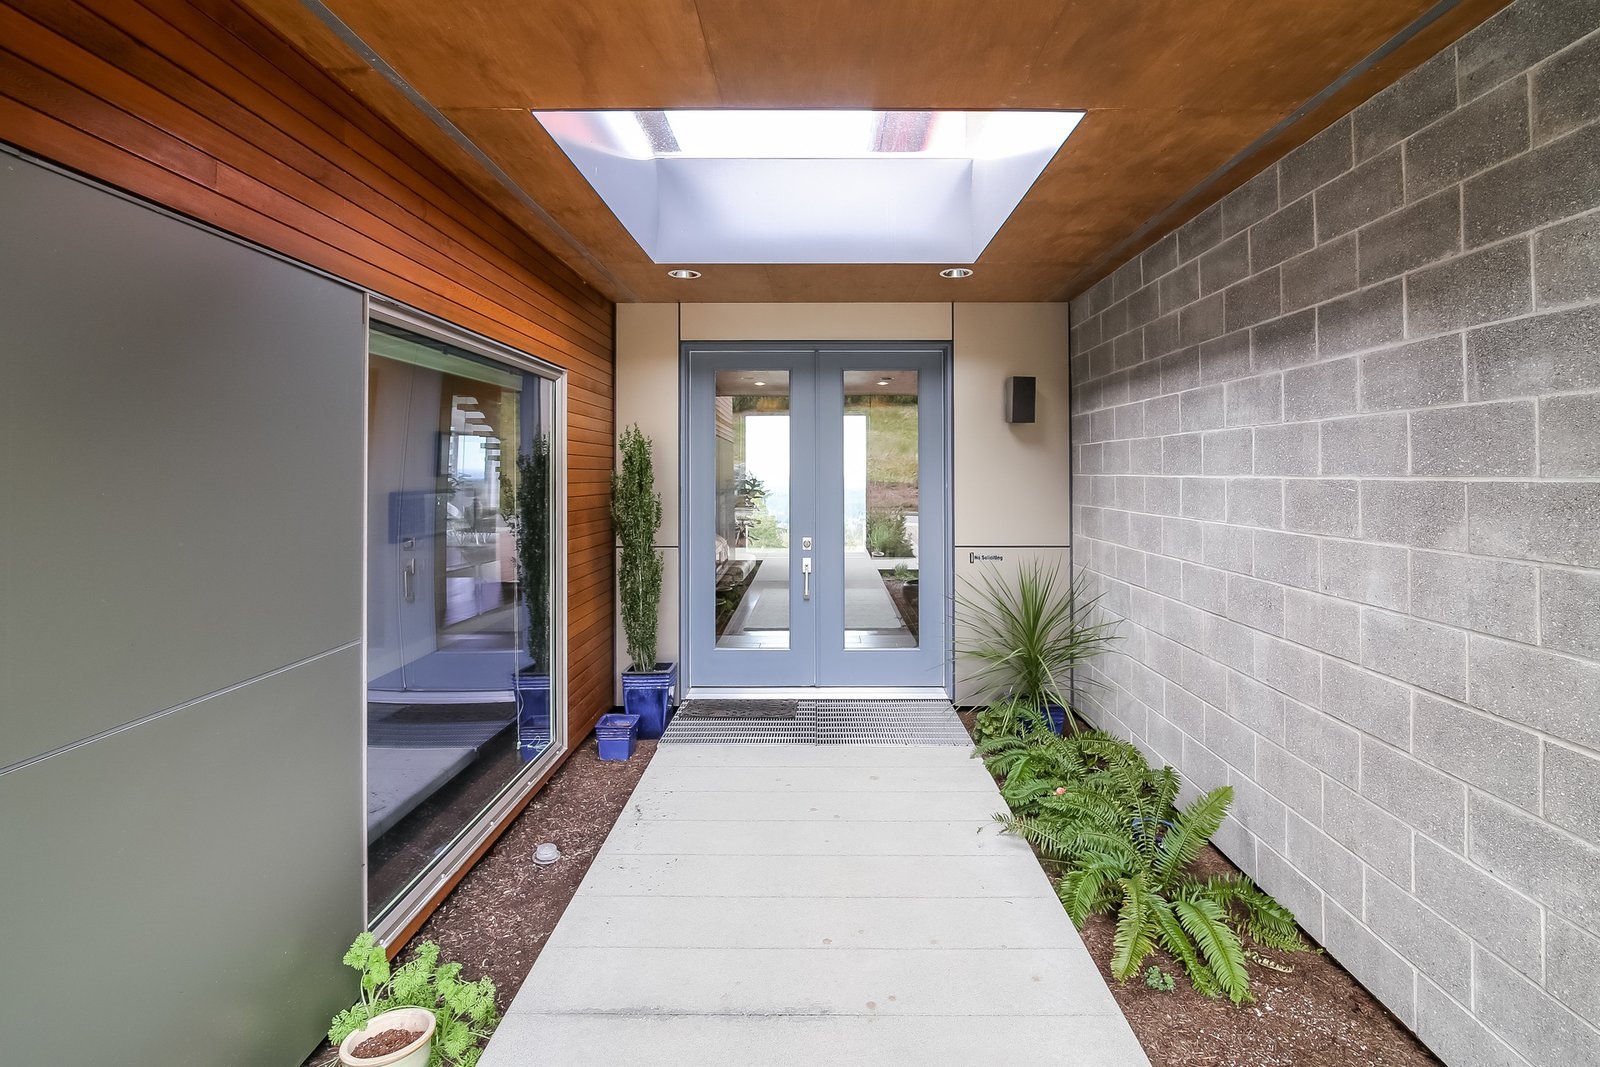 Outdoor, Shrubs, Front Yard, Planters Patio, Porch, Deck, Concrete Patio, Porch, Deck, Wood Patio, Porch, Deck, and Walkways  Japanese Builder Ichijo Creates Net-Zero Energy Home by PlanOmatic